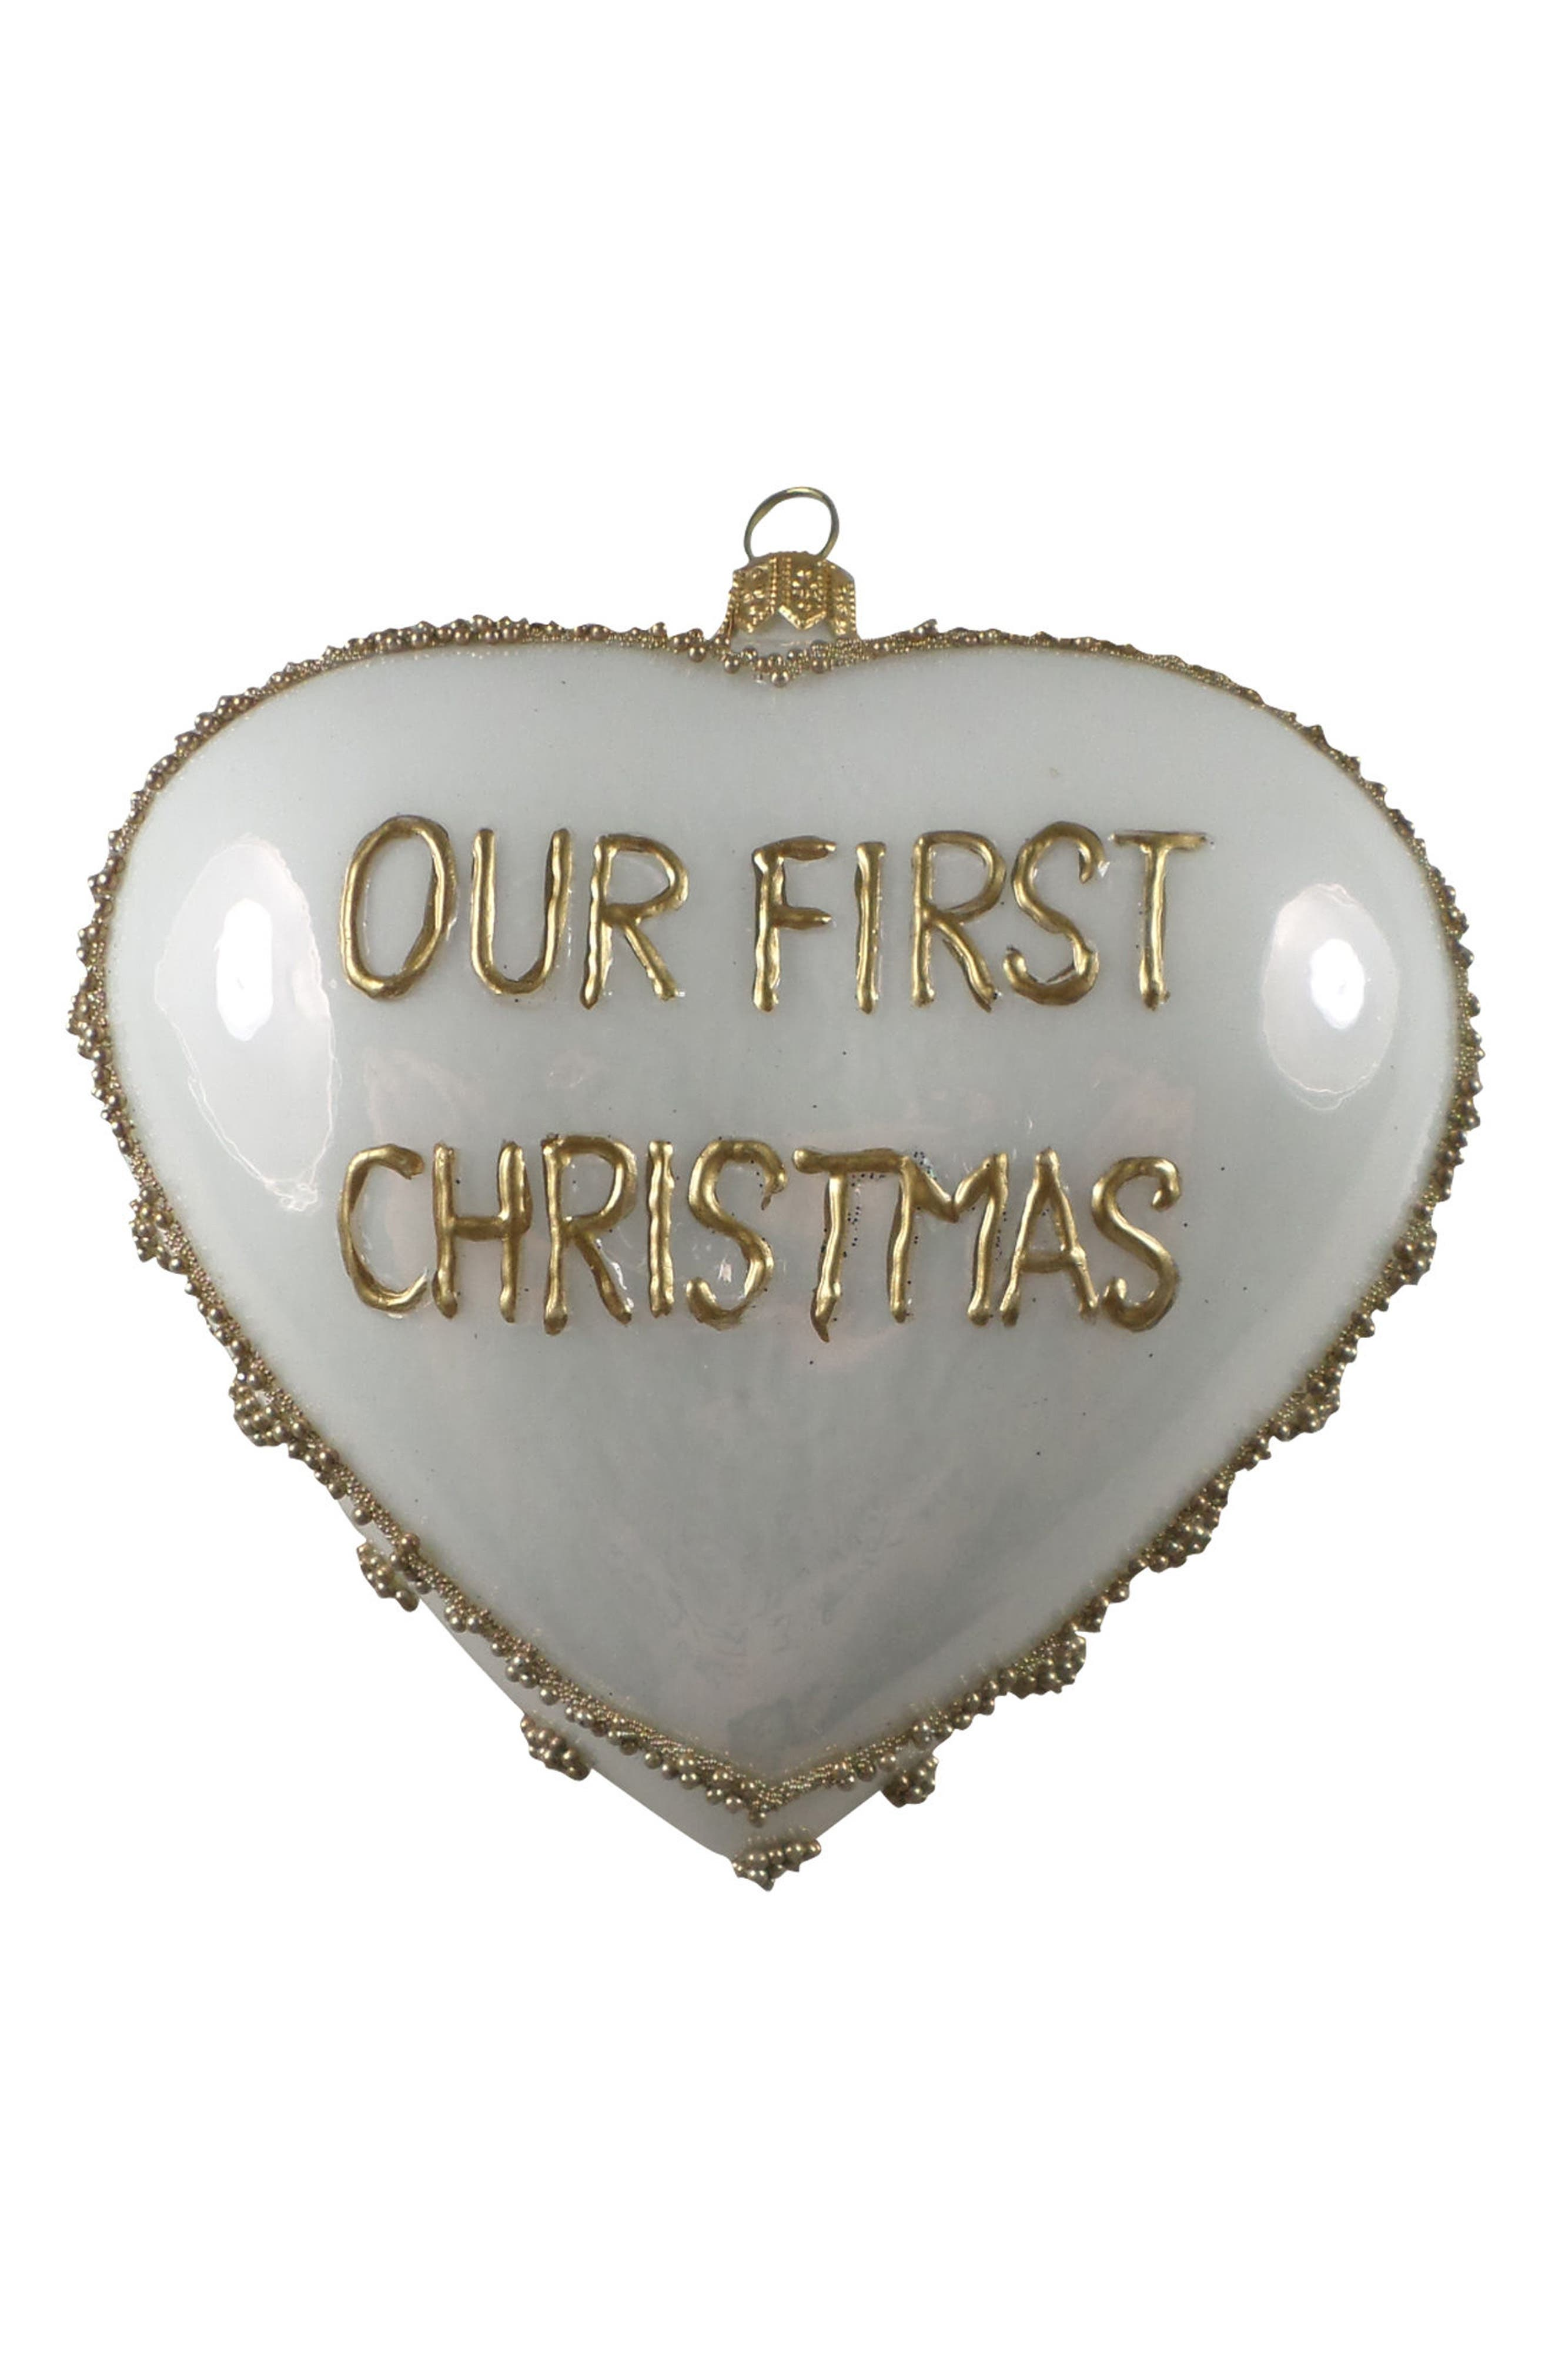 Main Image - Nordstrom at Home Our First Christmas Handblown Glass Heart Ornament